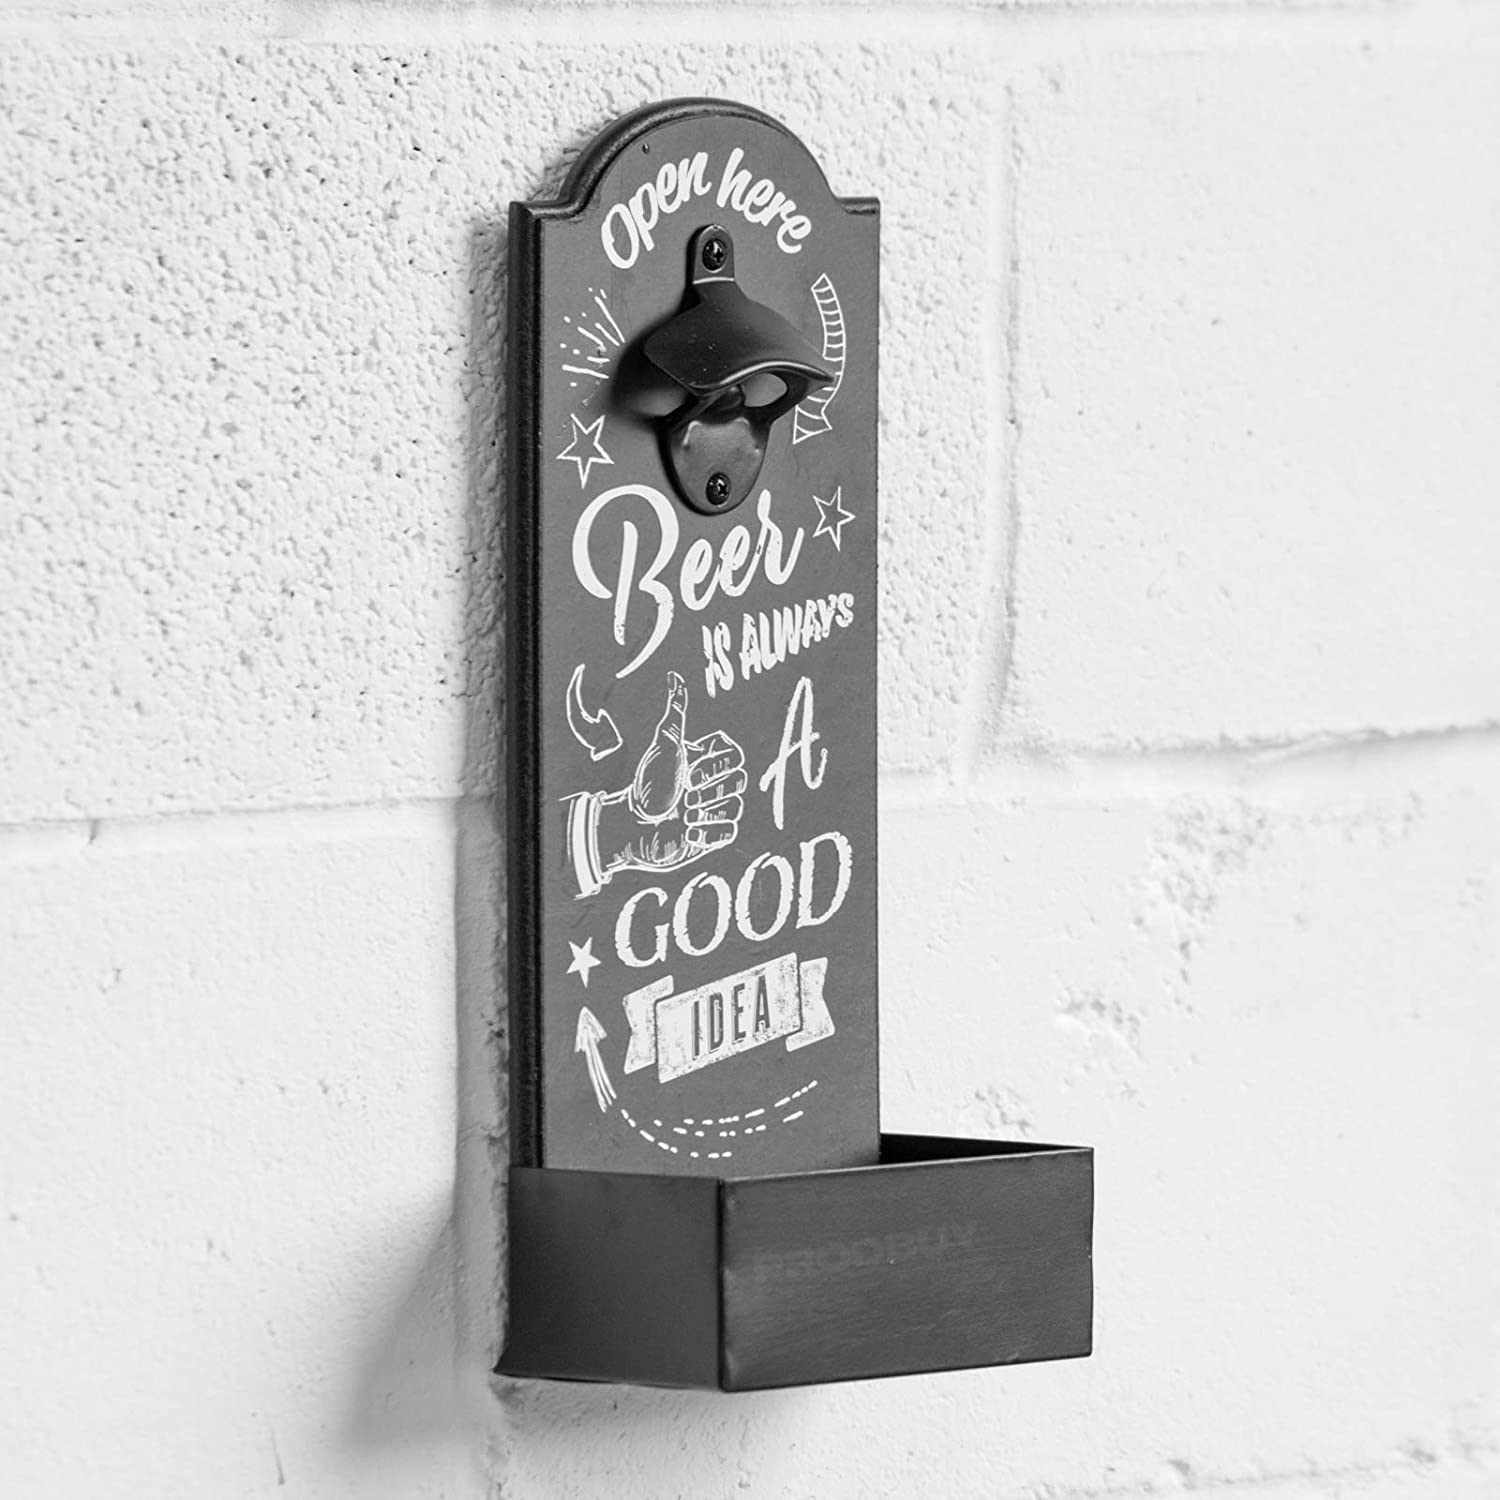 Large Wall Mounted Bottle Opener with Cap Catcher Designed to Wall Mounted Good Idea